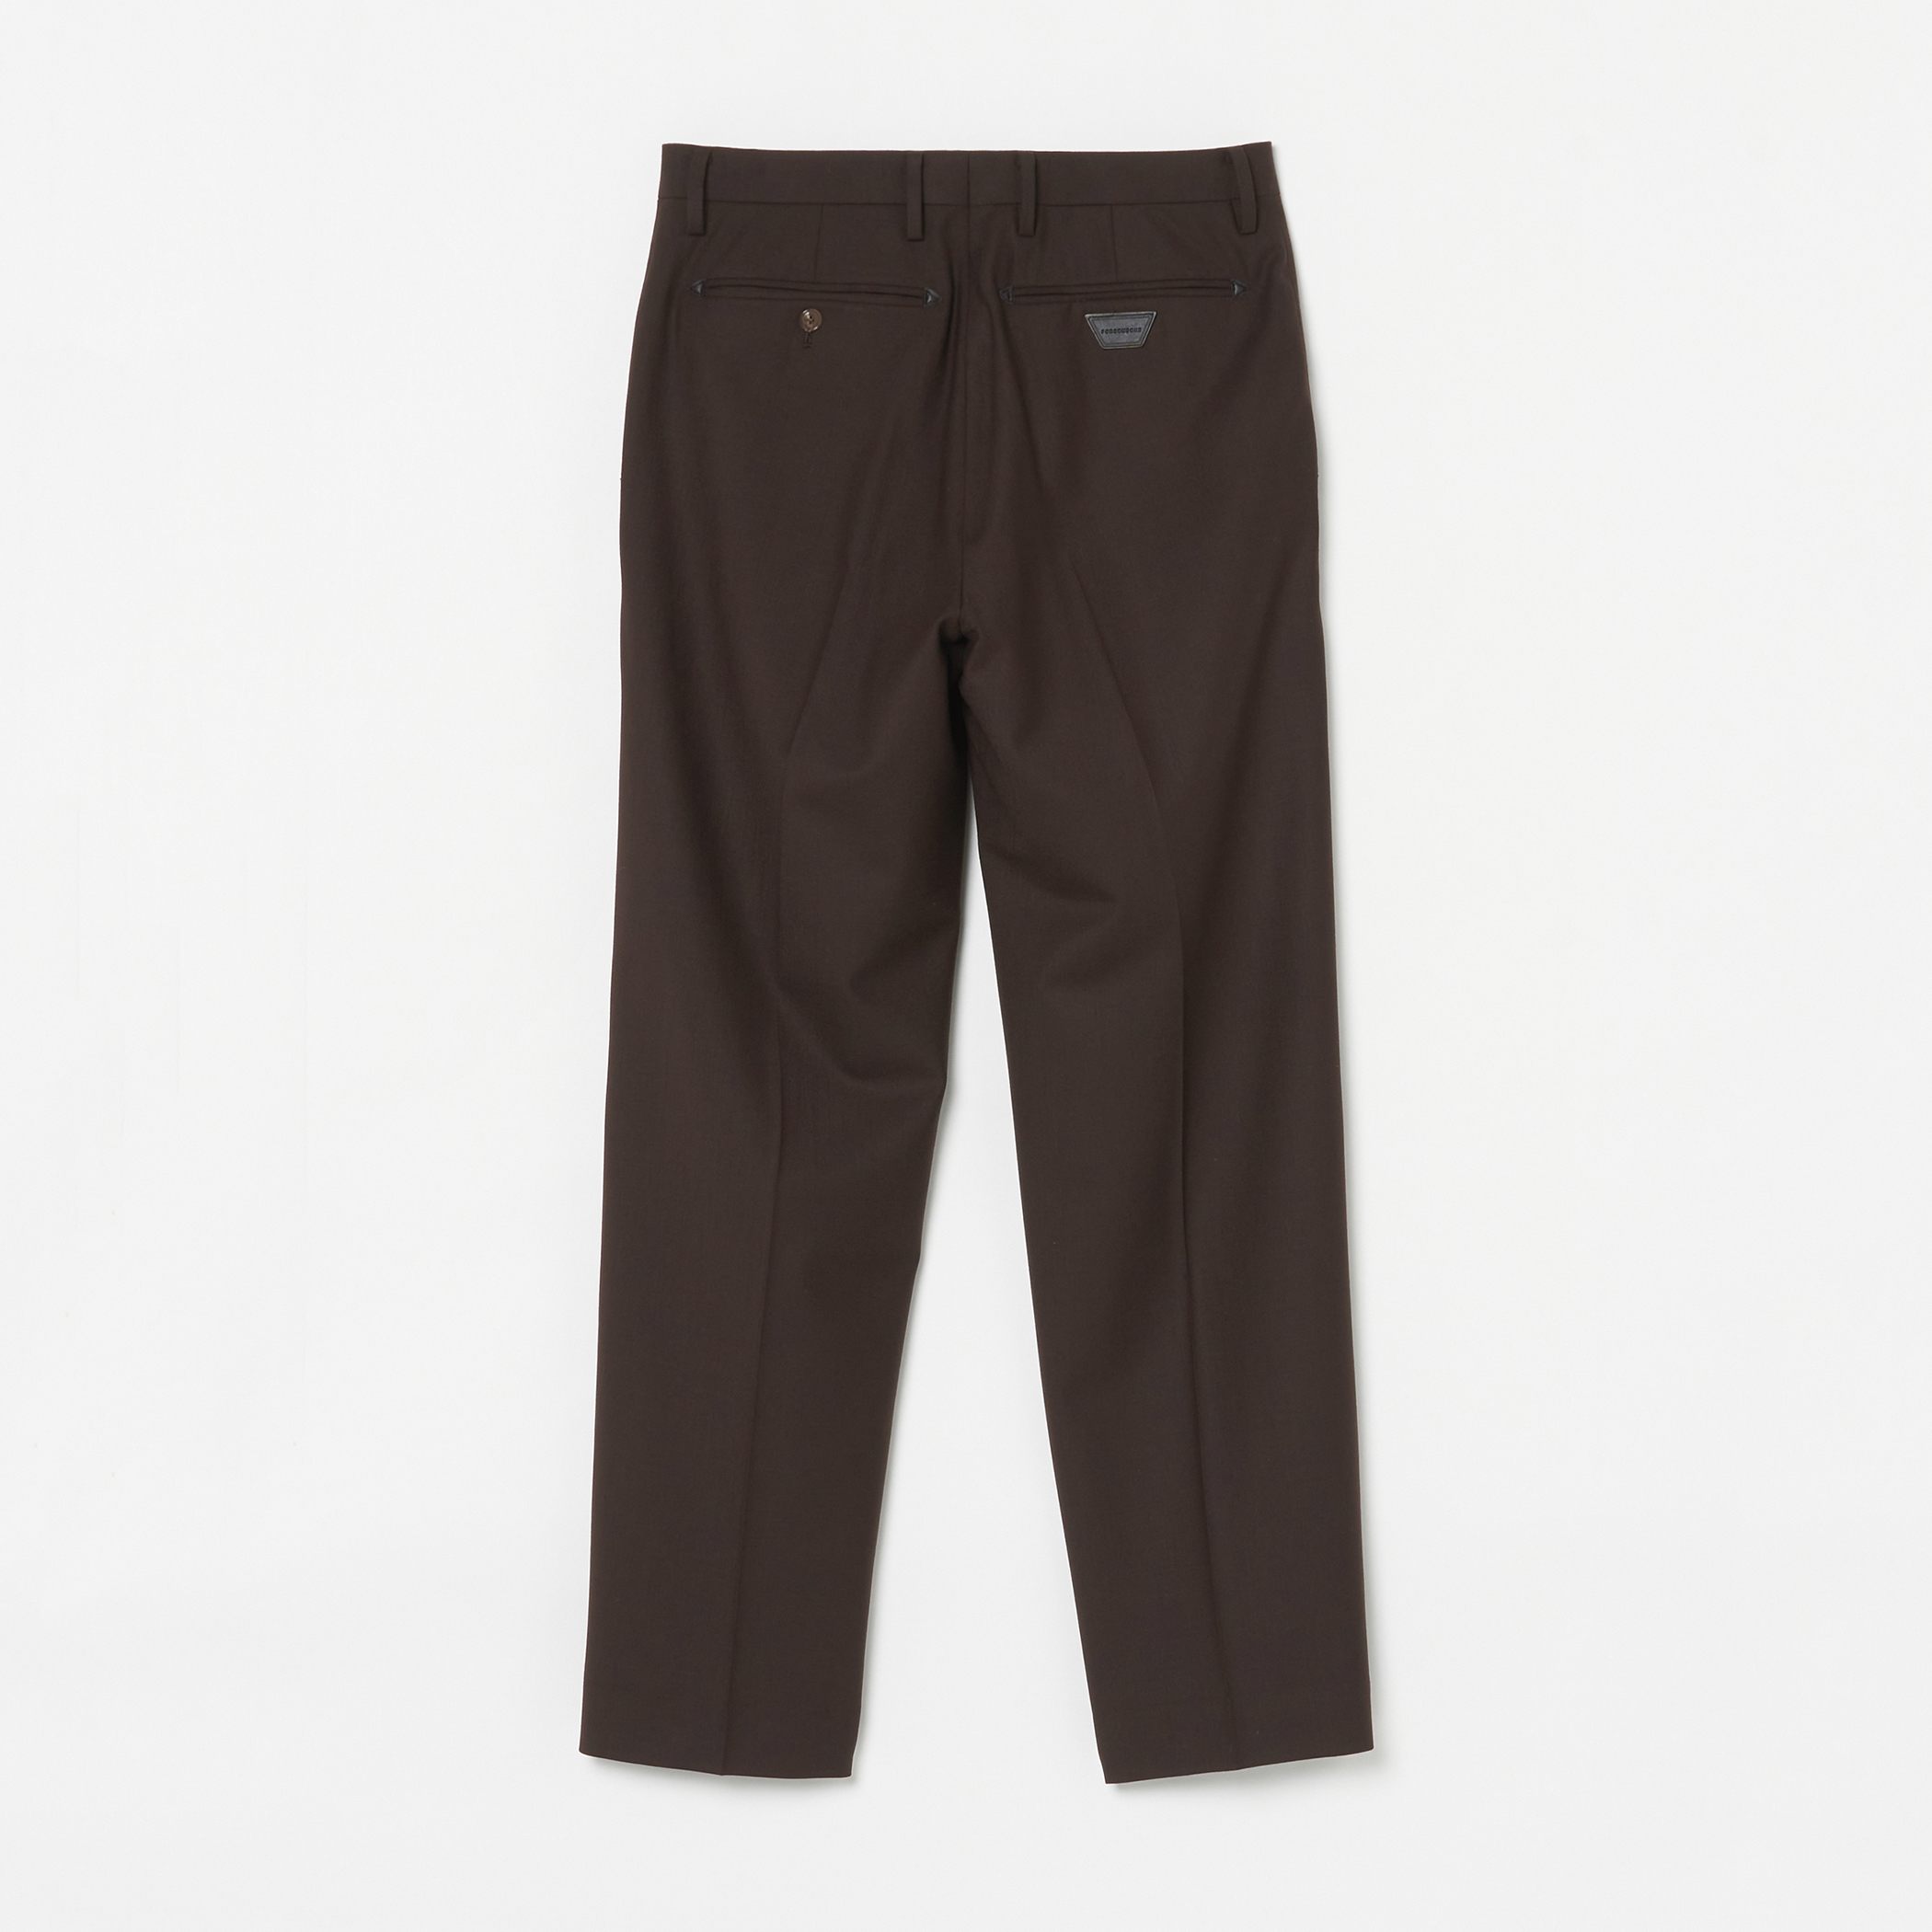 ADAM SUIT SOLID TROUSERS 詳細画像 Brown 8